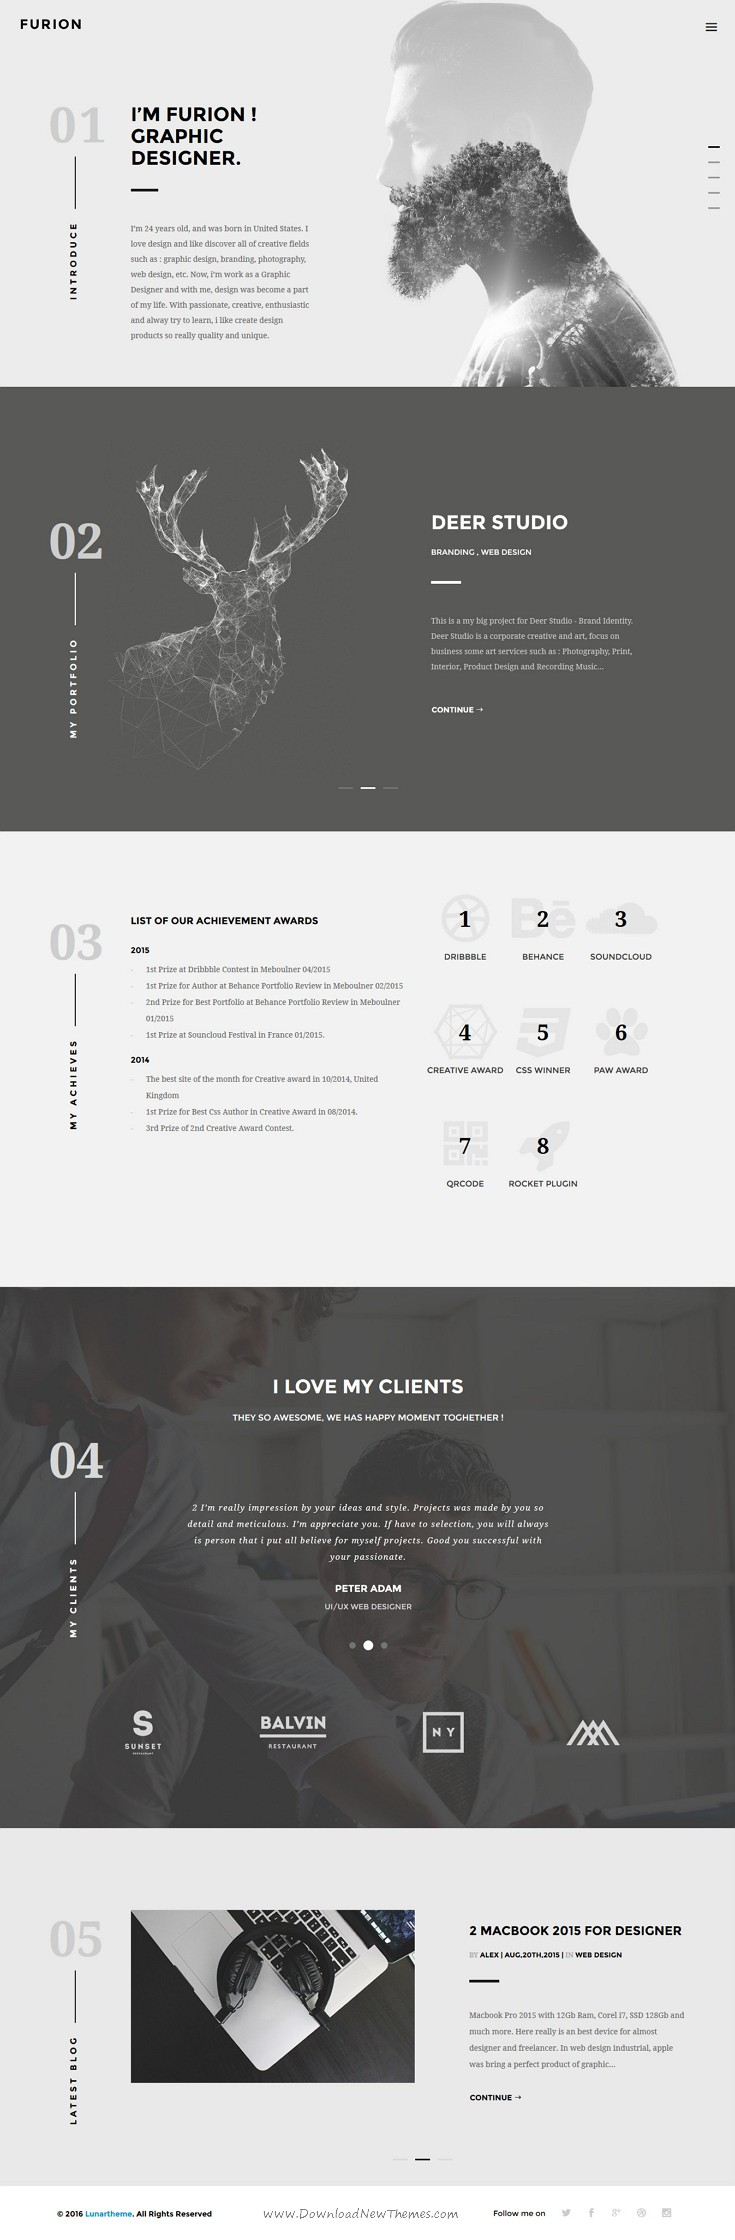 Furion - A Responsive HTML Template for Creative Agencies | Creative